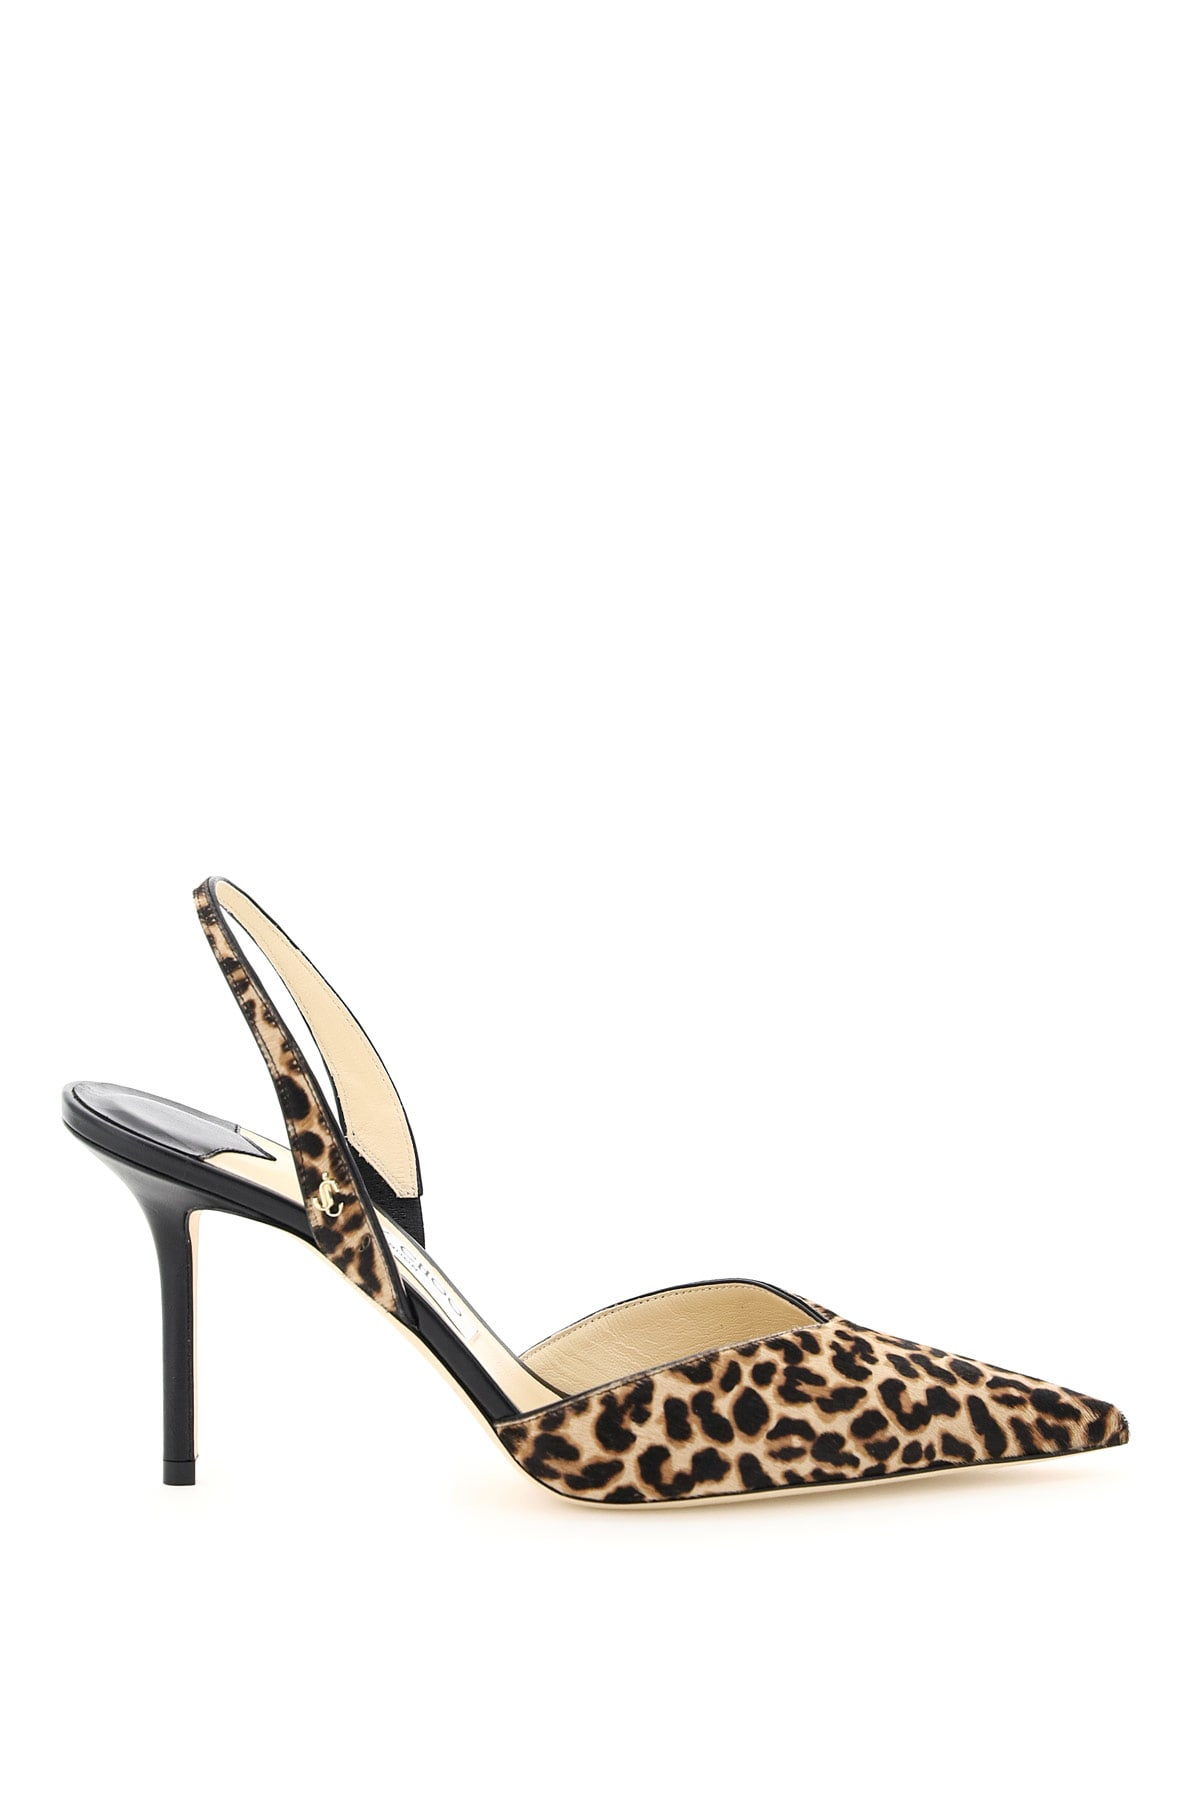 JIMMY CHOO THANDI 85 LEOPARD PRINT SLINGBACK PUMPS